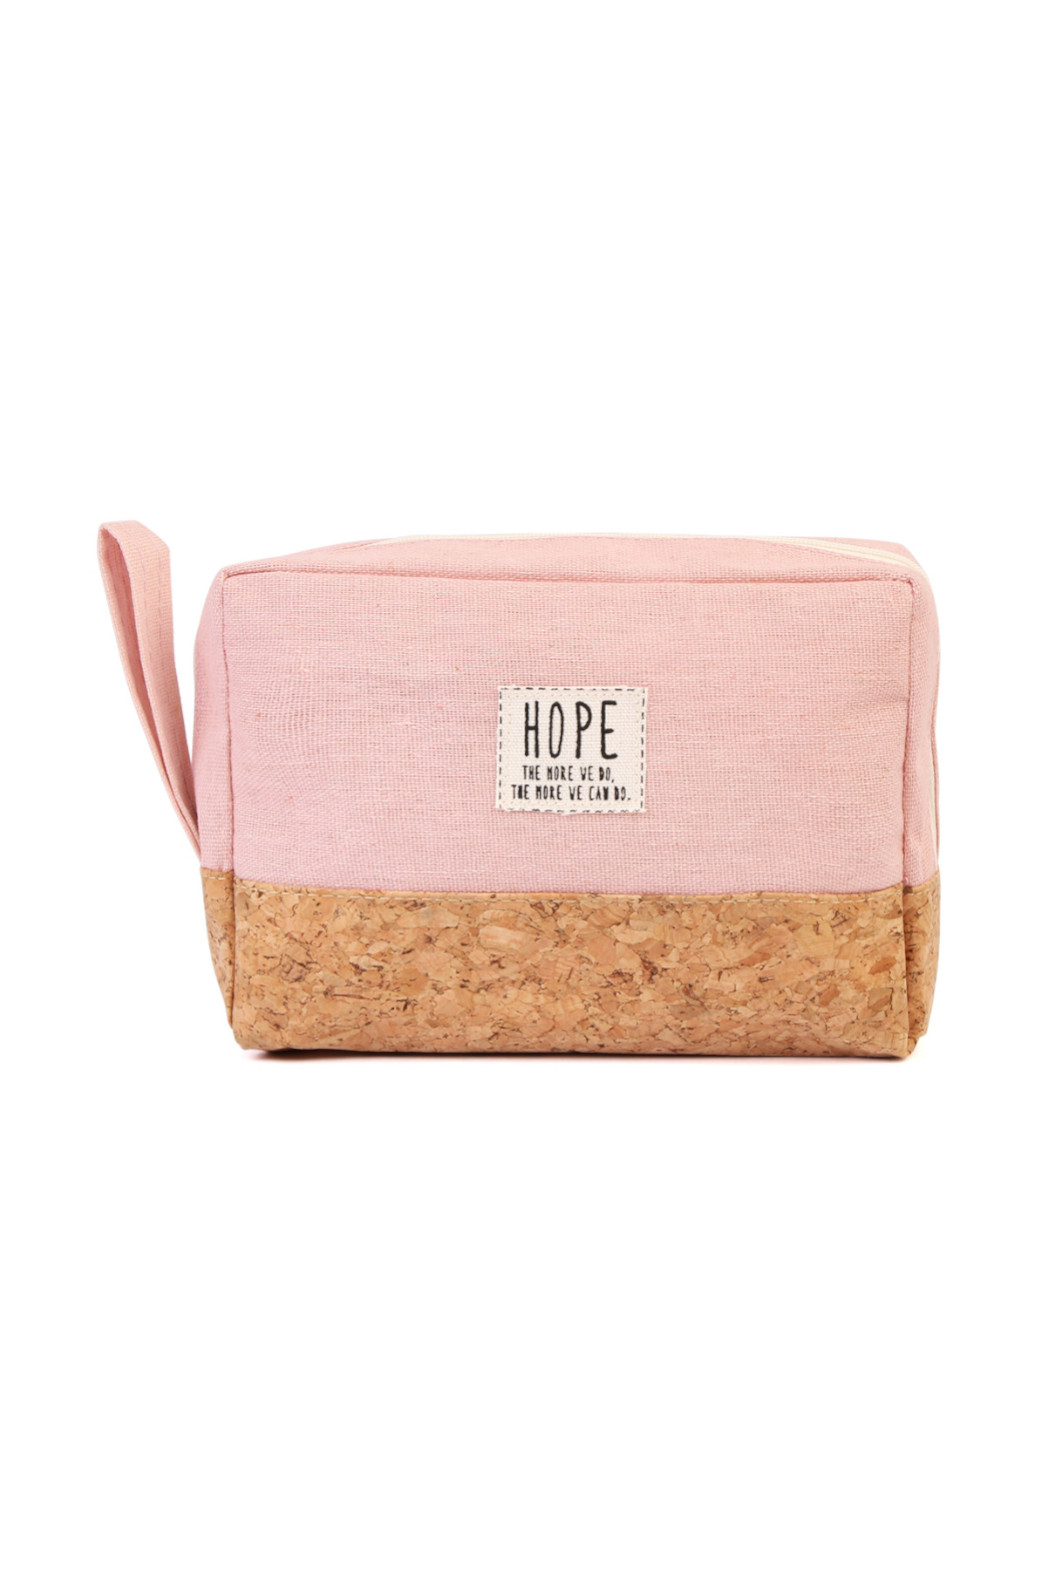 TPO HOPE Pink Canvas Cosmetic Pouch - Main Image